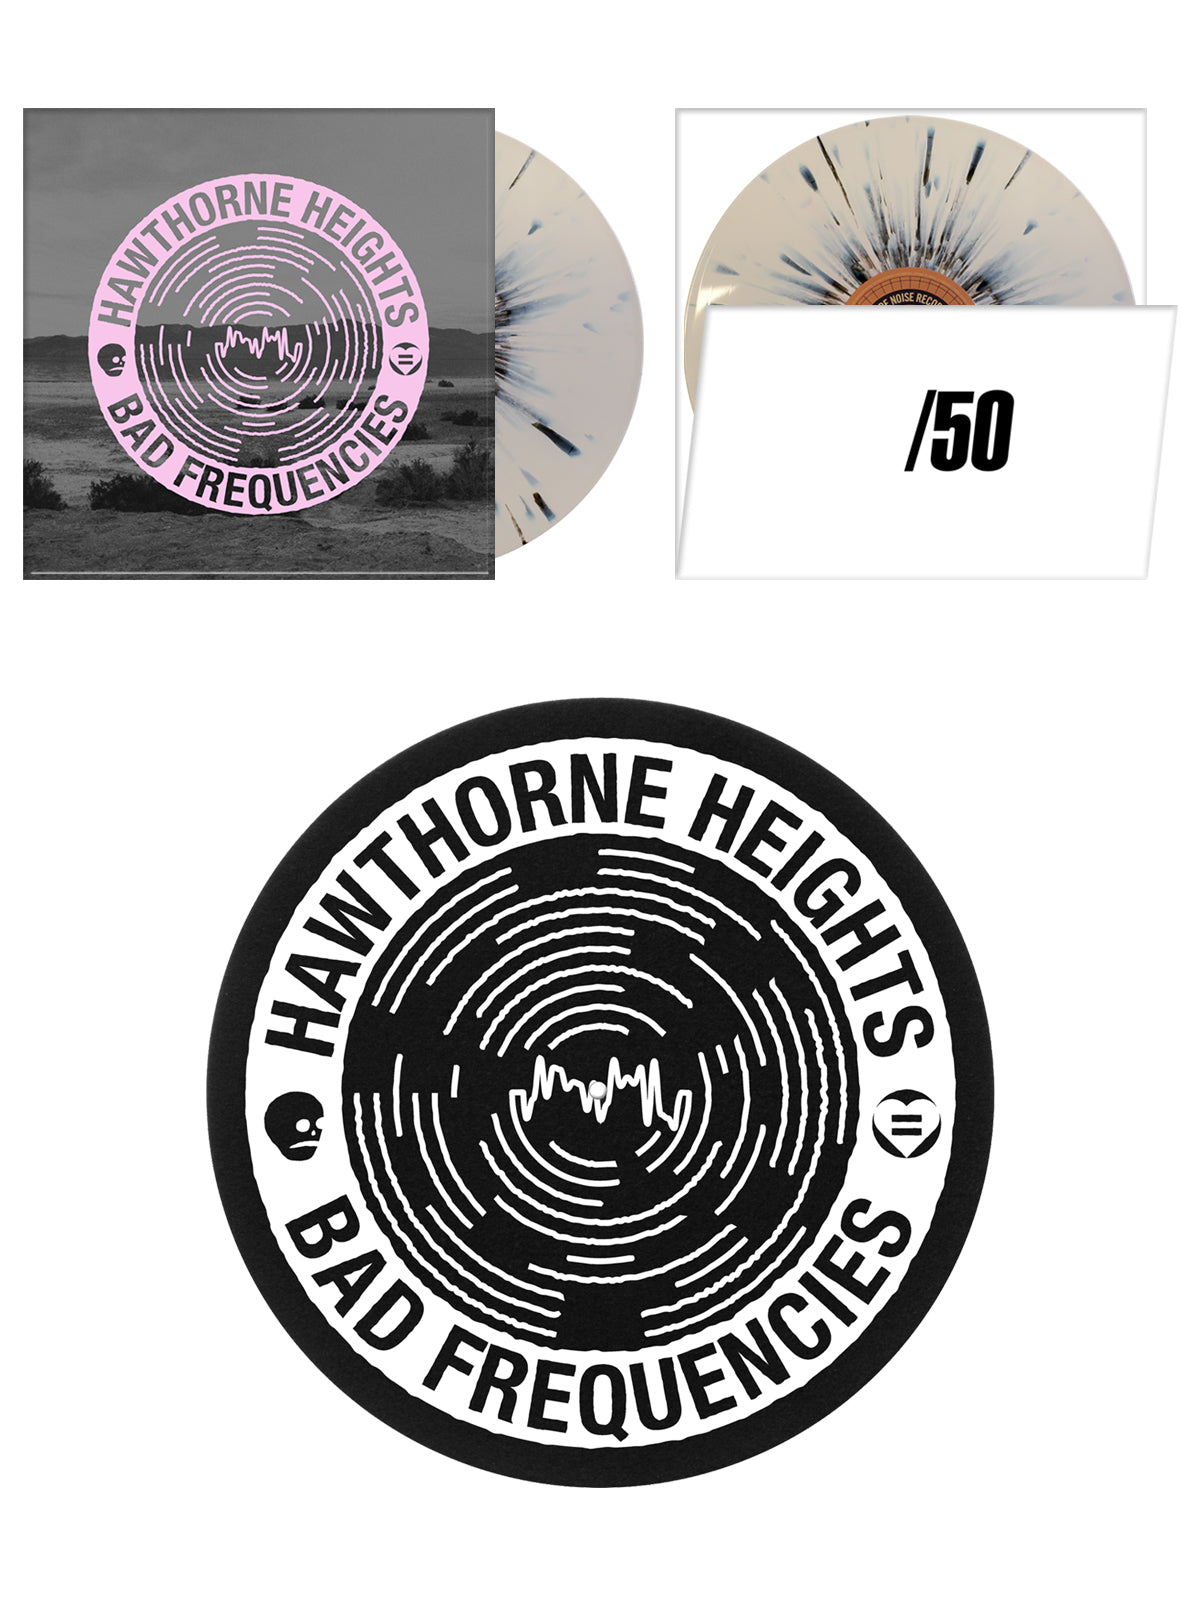 Hawthorne Heights - Bad Frequencies Vinyl Bundle - Merch Limited